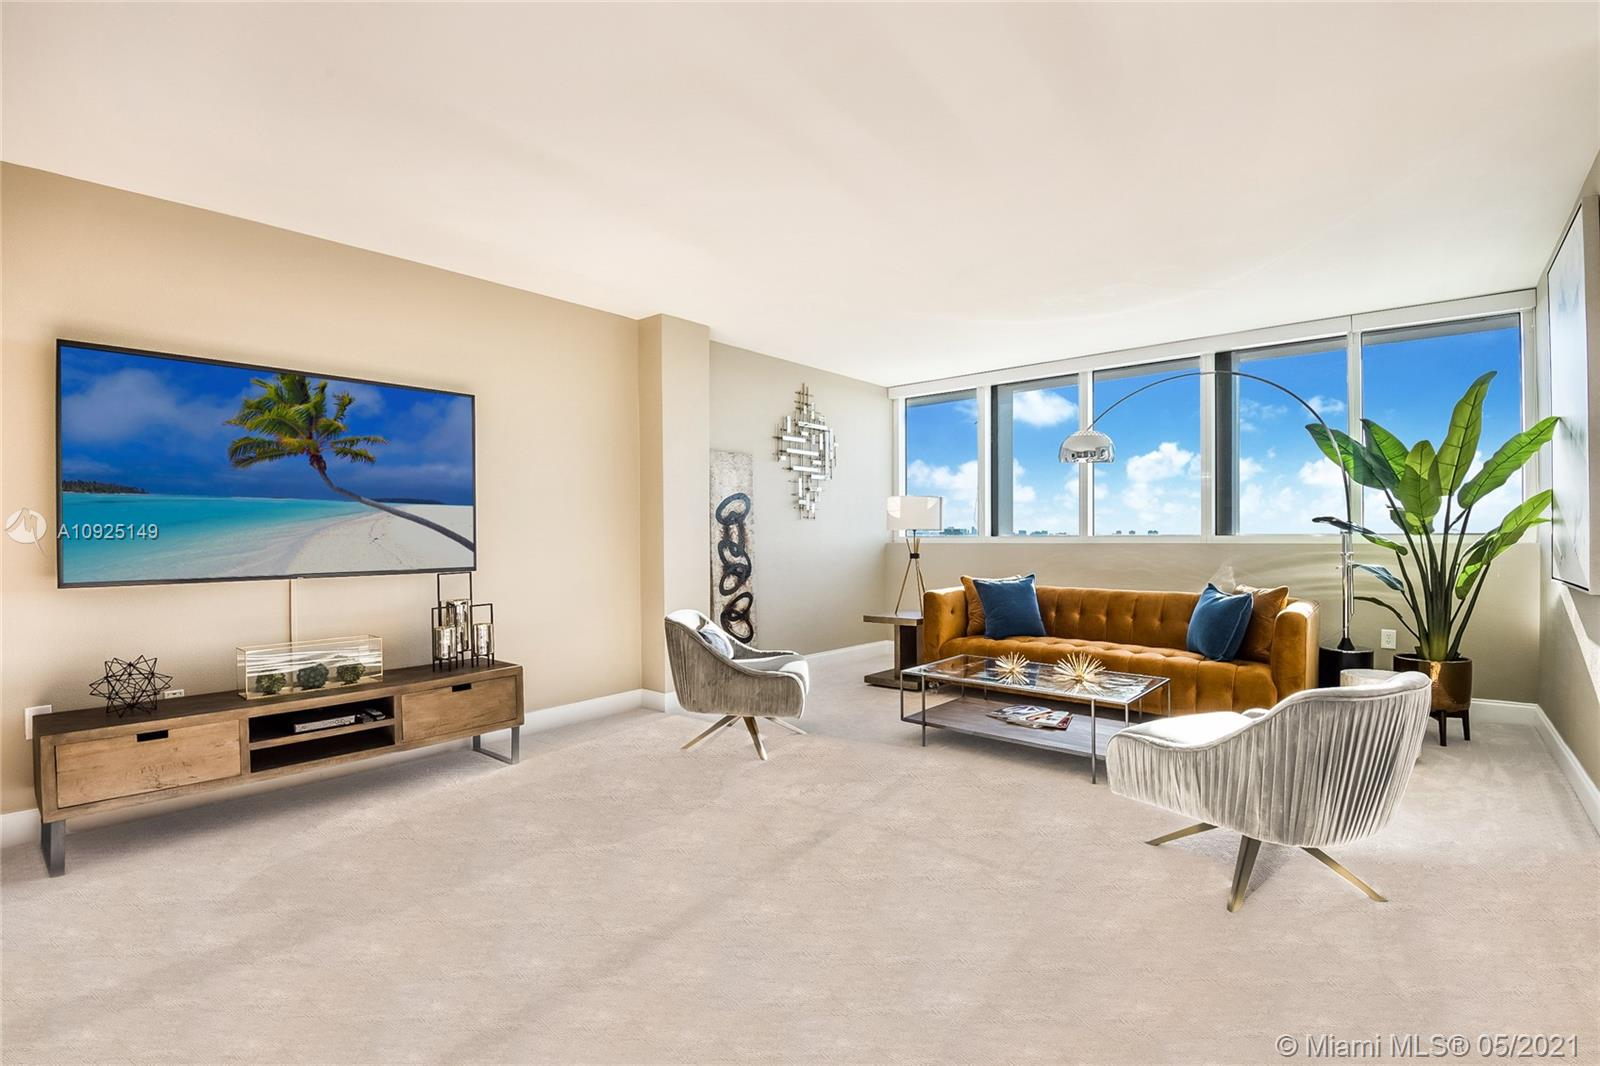 Gorgeous, newly furnished modern penthouse in full-service 5-star luxury building with views to match! Rare opportunity to own in prime location near Bal Harbour Shops, next to The Ritz-Carlton. Designer decorated showpiece with large open floor plan, boasts two large masters with oversized closets, wall to wall windows with expansive water and city views, new non-toxic paint, new carpet, marble floors, new stainless appliances, new doors, new bathroom countertops and fixtures, touch activated lighted mirrors, new kitchen fixtures, new lighting, washer/dryer, energy-efficient features, artistic and custom touches throughout, and huge double balcony.